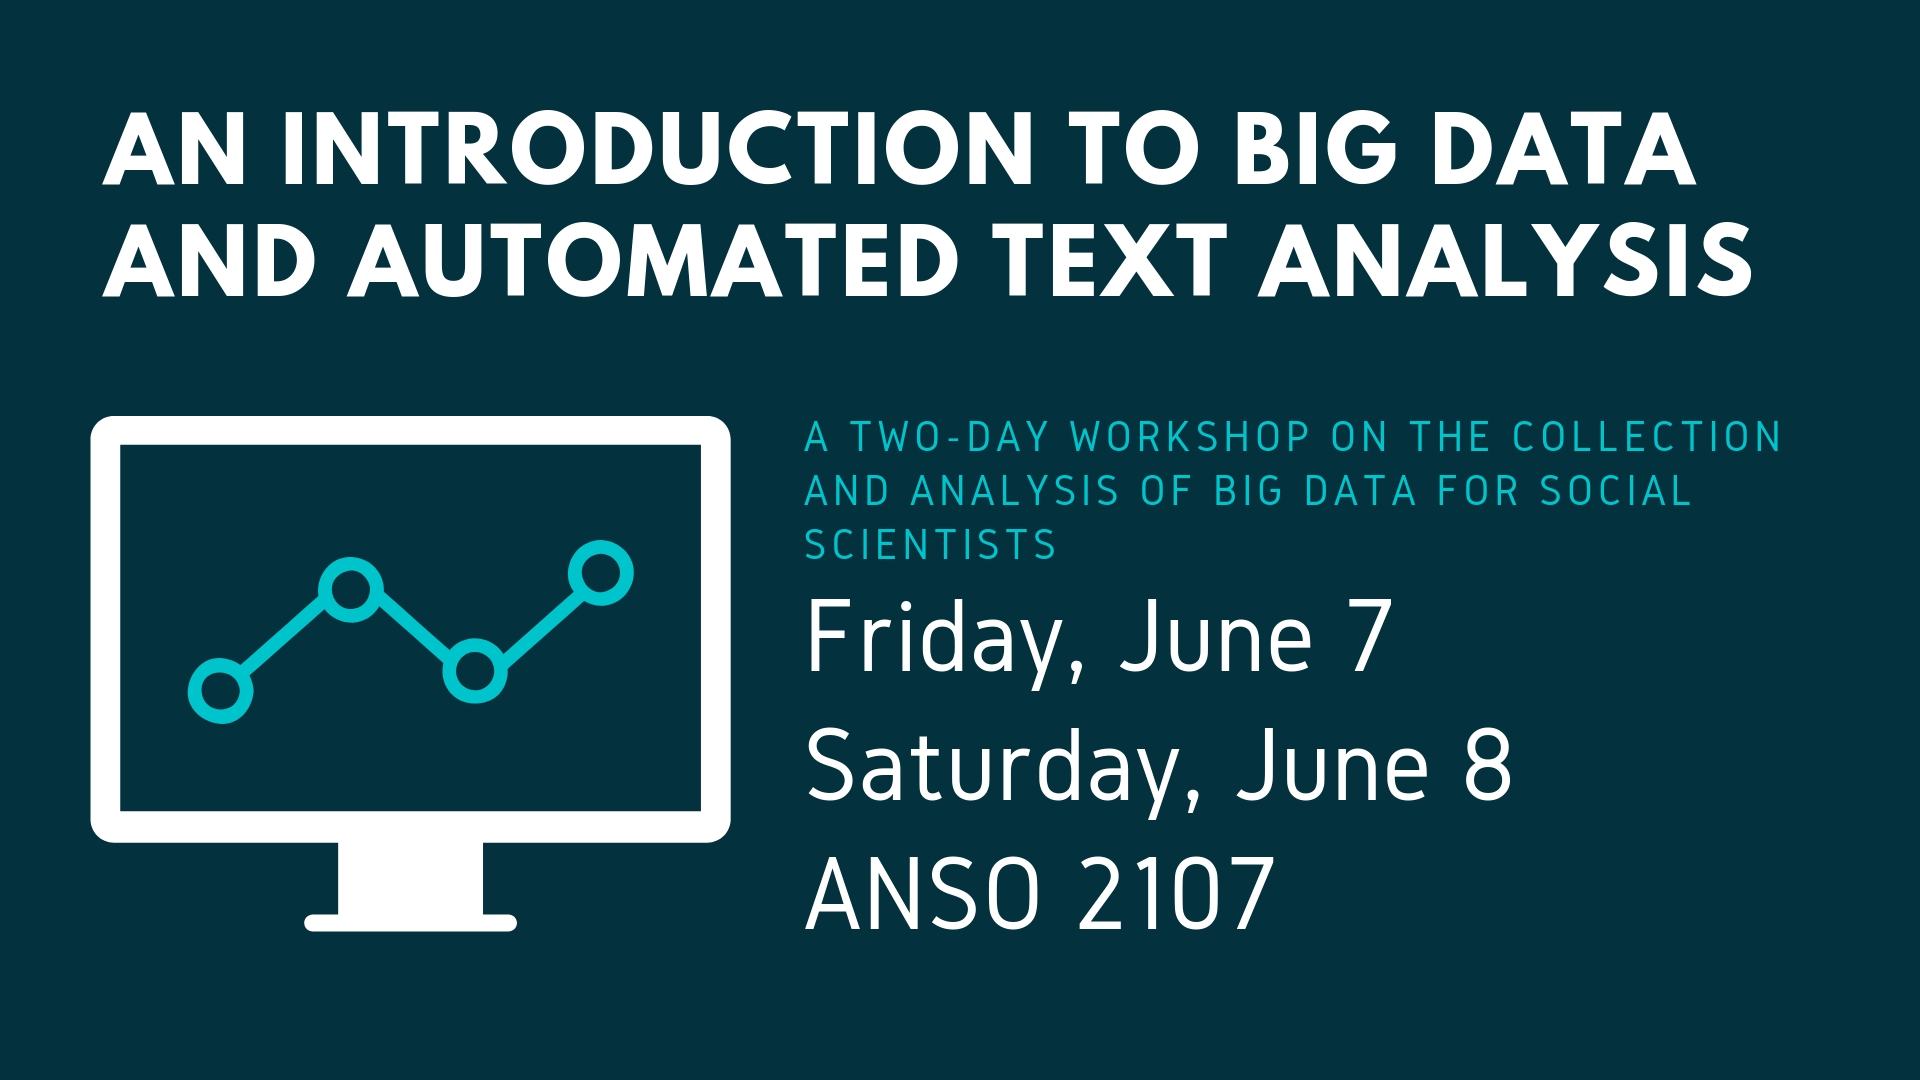 Introduction to Big Data and Automated Text Analysis for Social Scientists - Department of Sociology